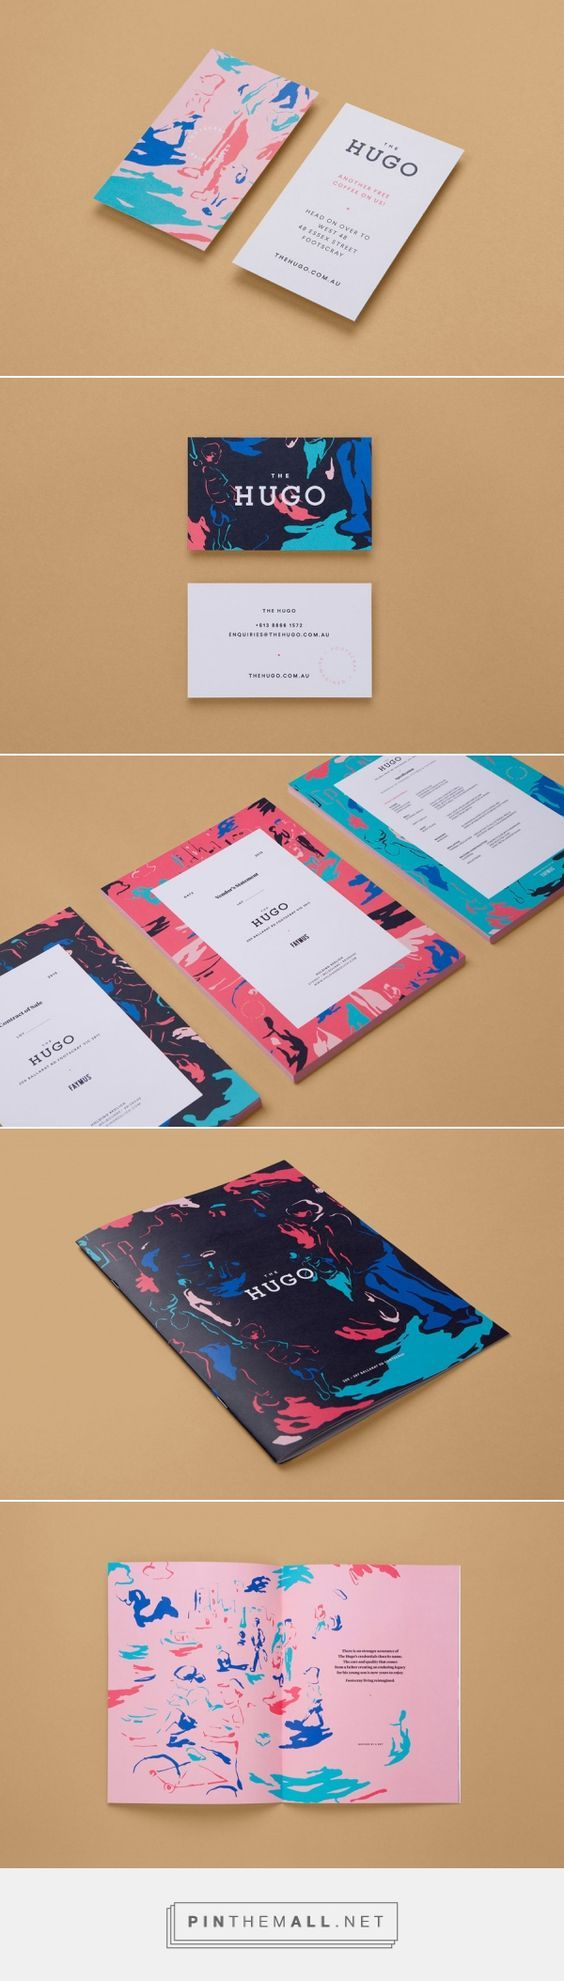 Paper Marble Pattern Business Card By Design Co On Creativemarket